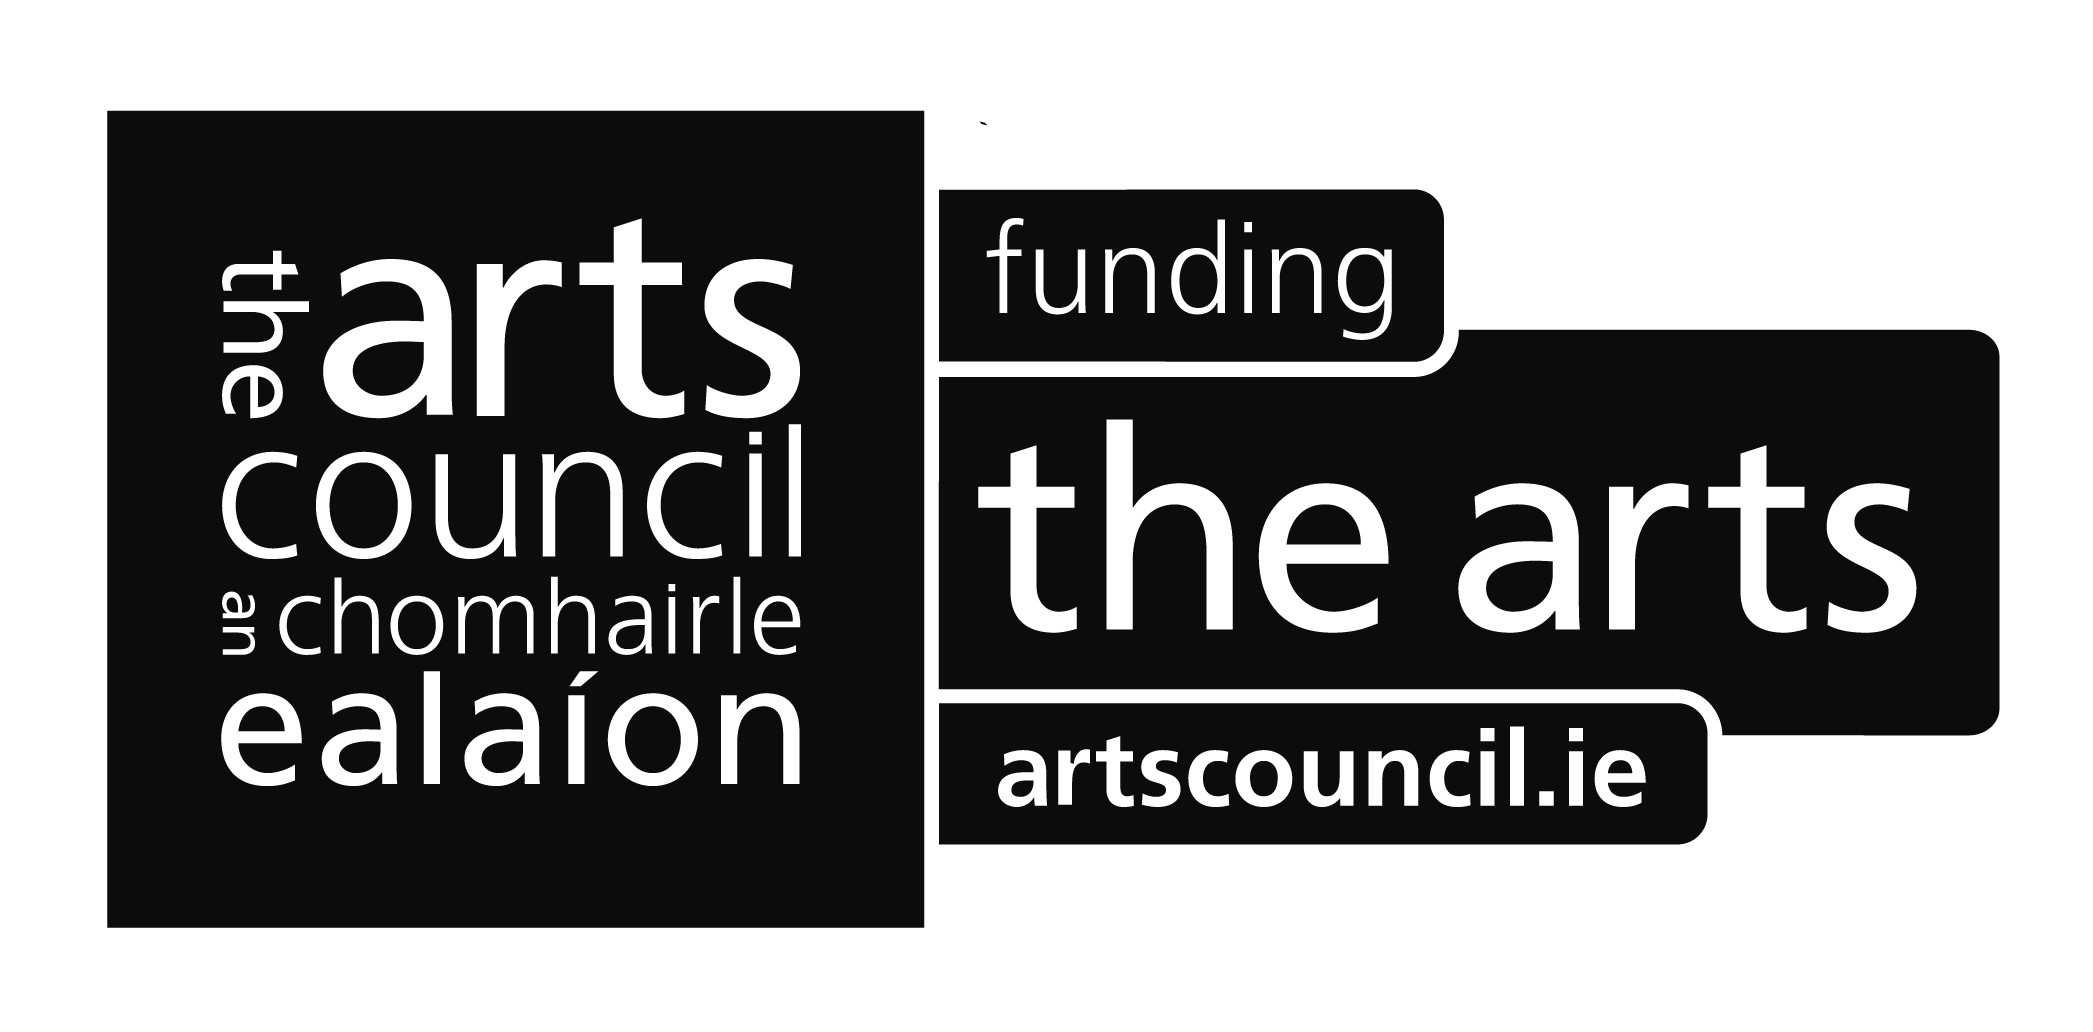 Arts Council Funded.jpg